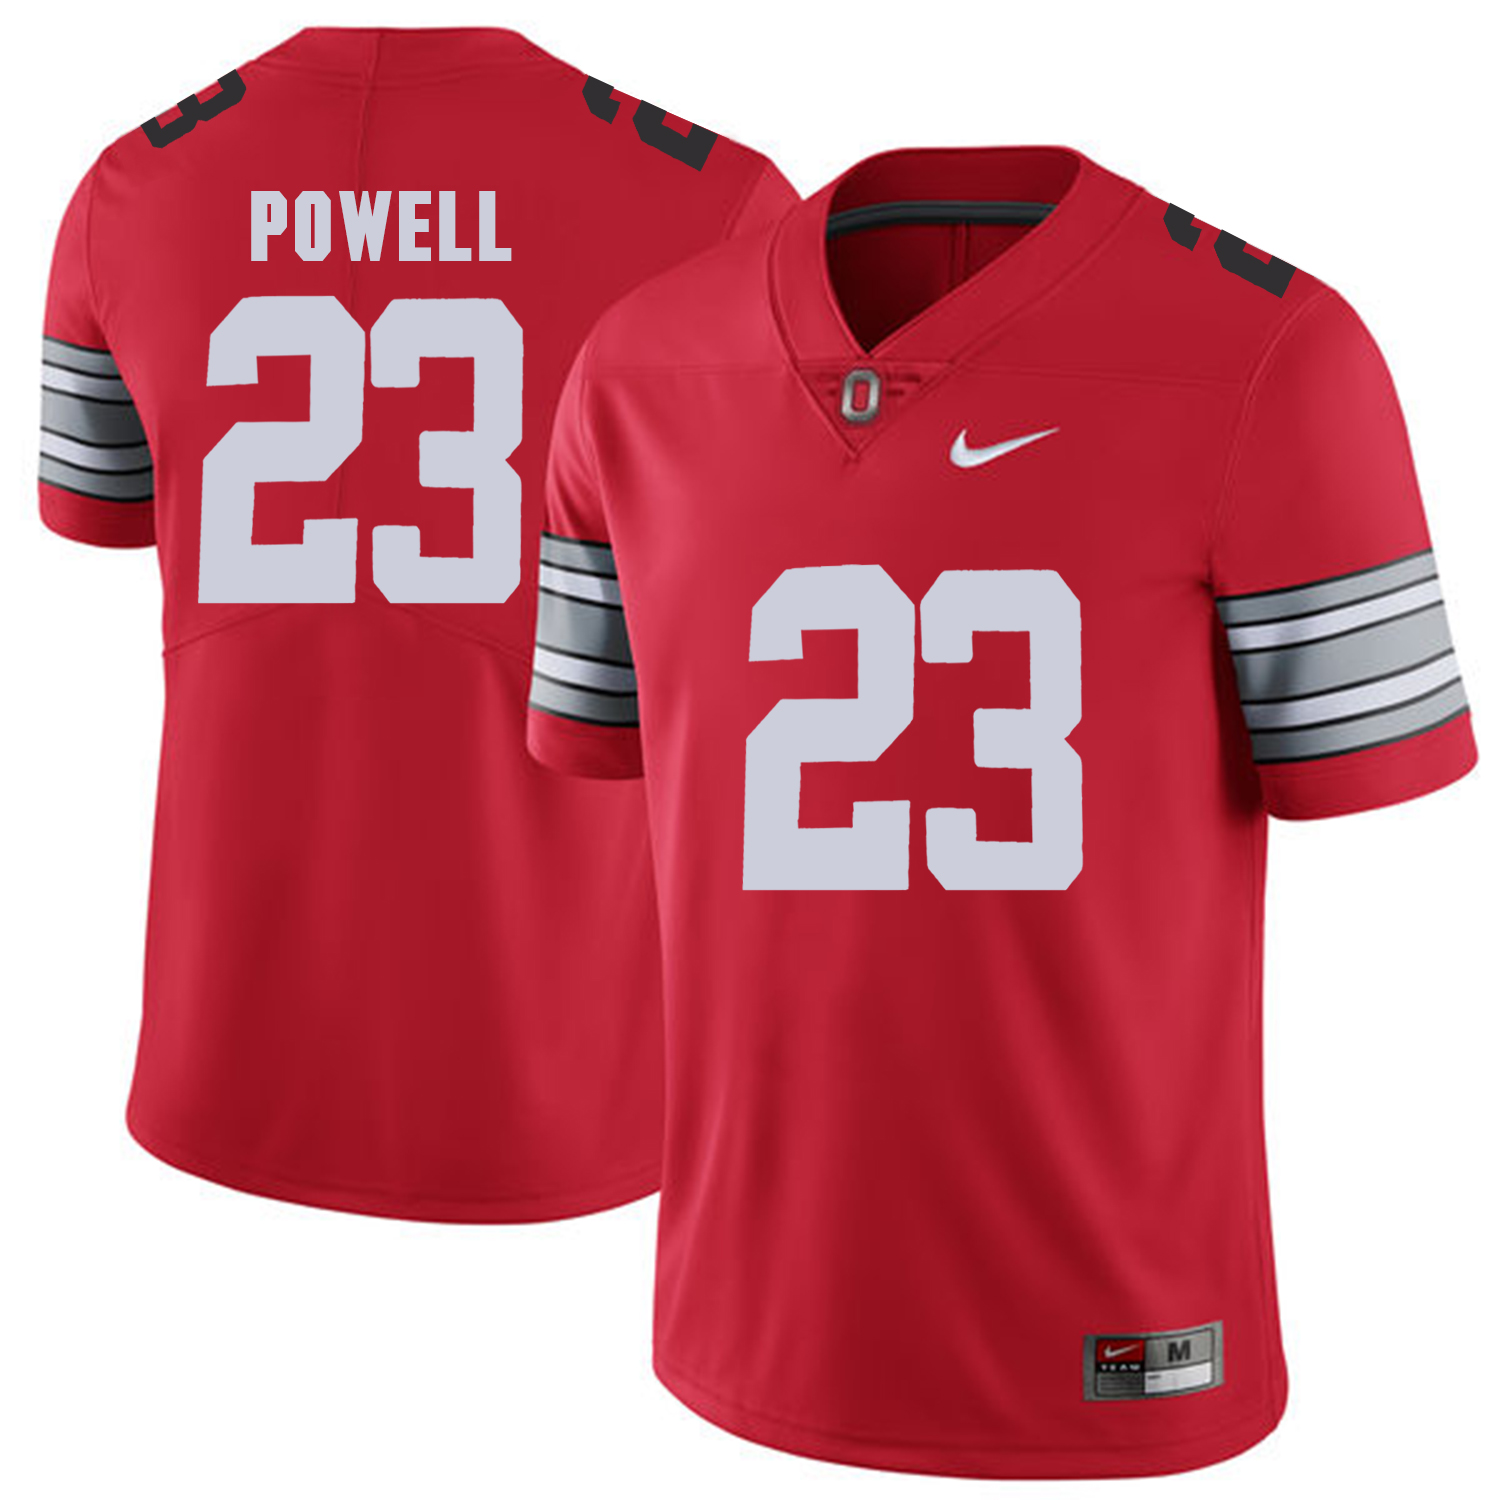 Men Ohio State 23 Powell Red Customized NCAA Jerseys